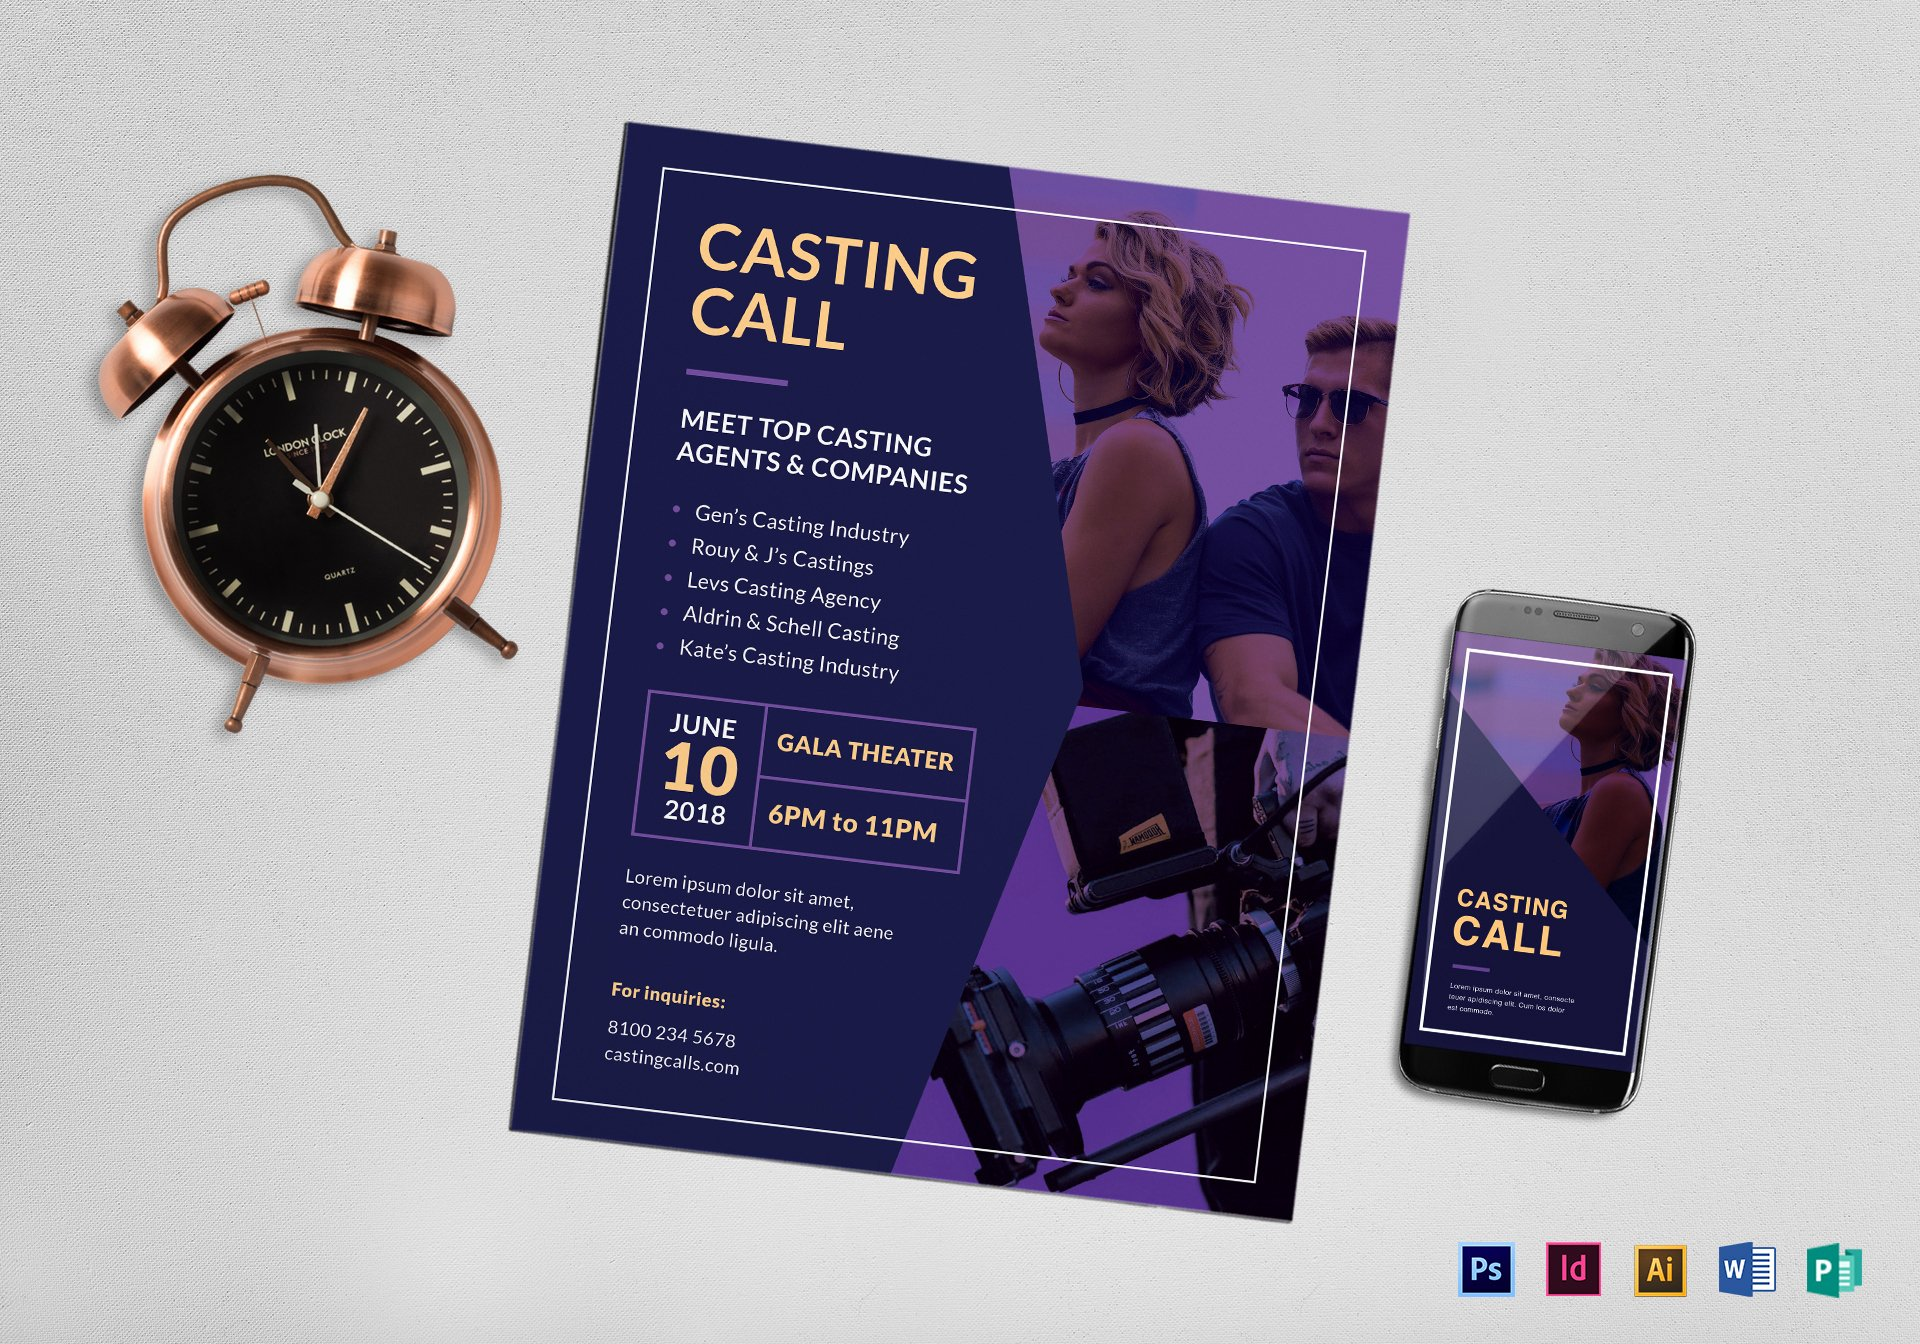 Casting Call Flyer Template Luxury Casting Call Flyer Design Template In Psd Word Publisher